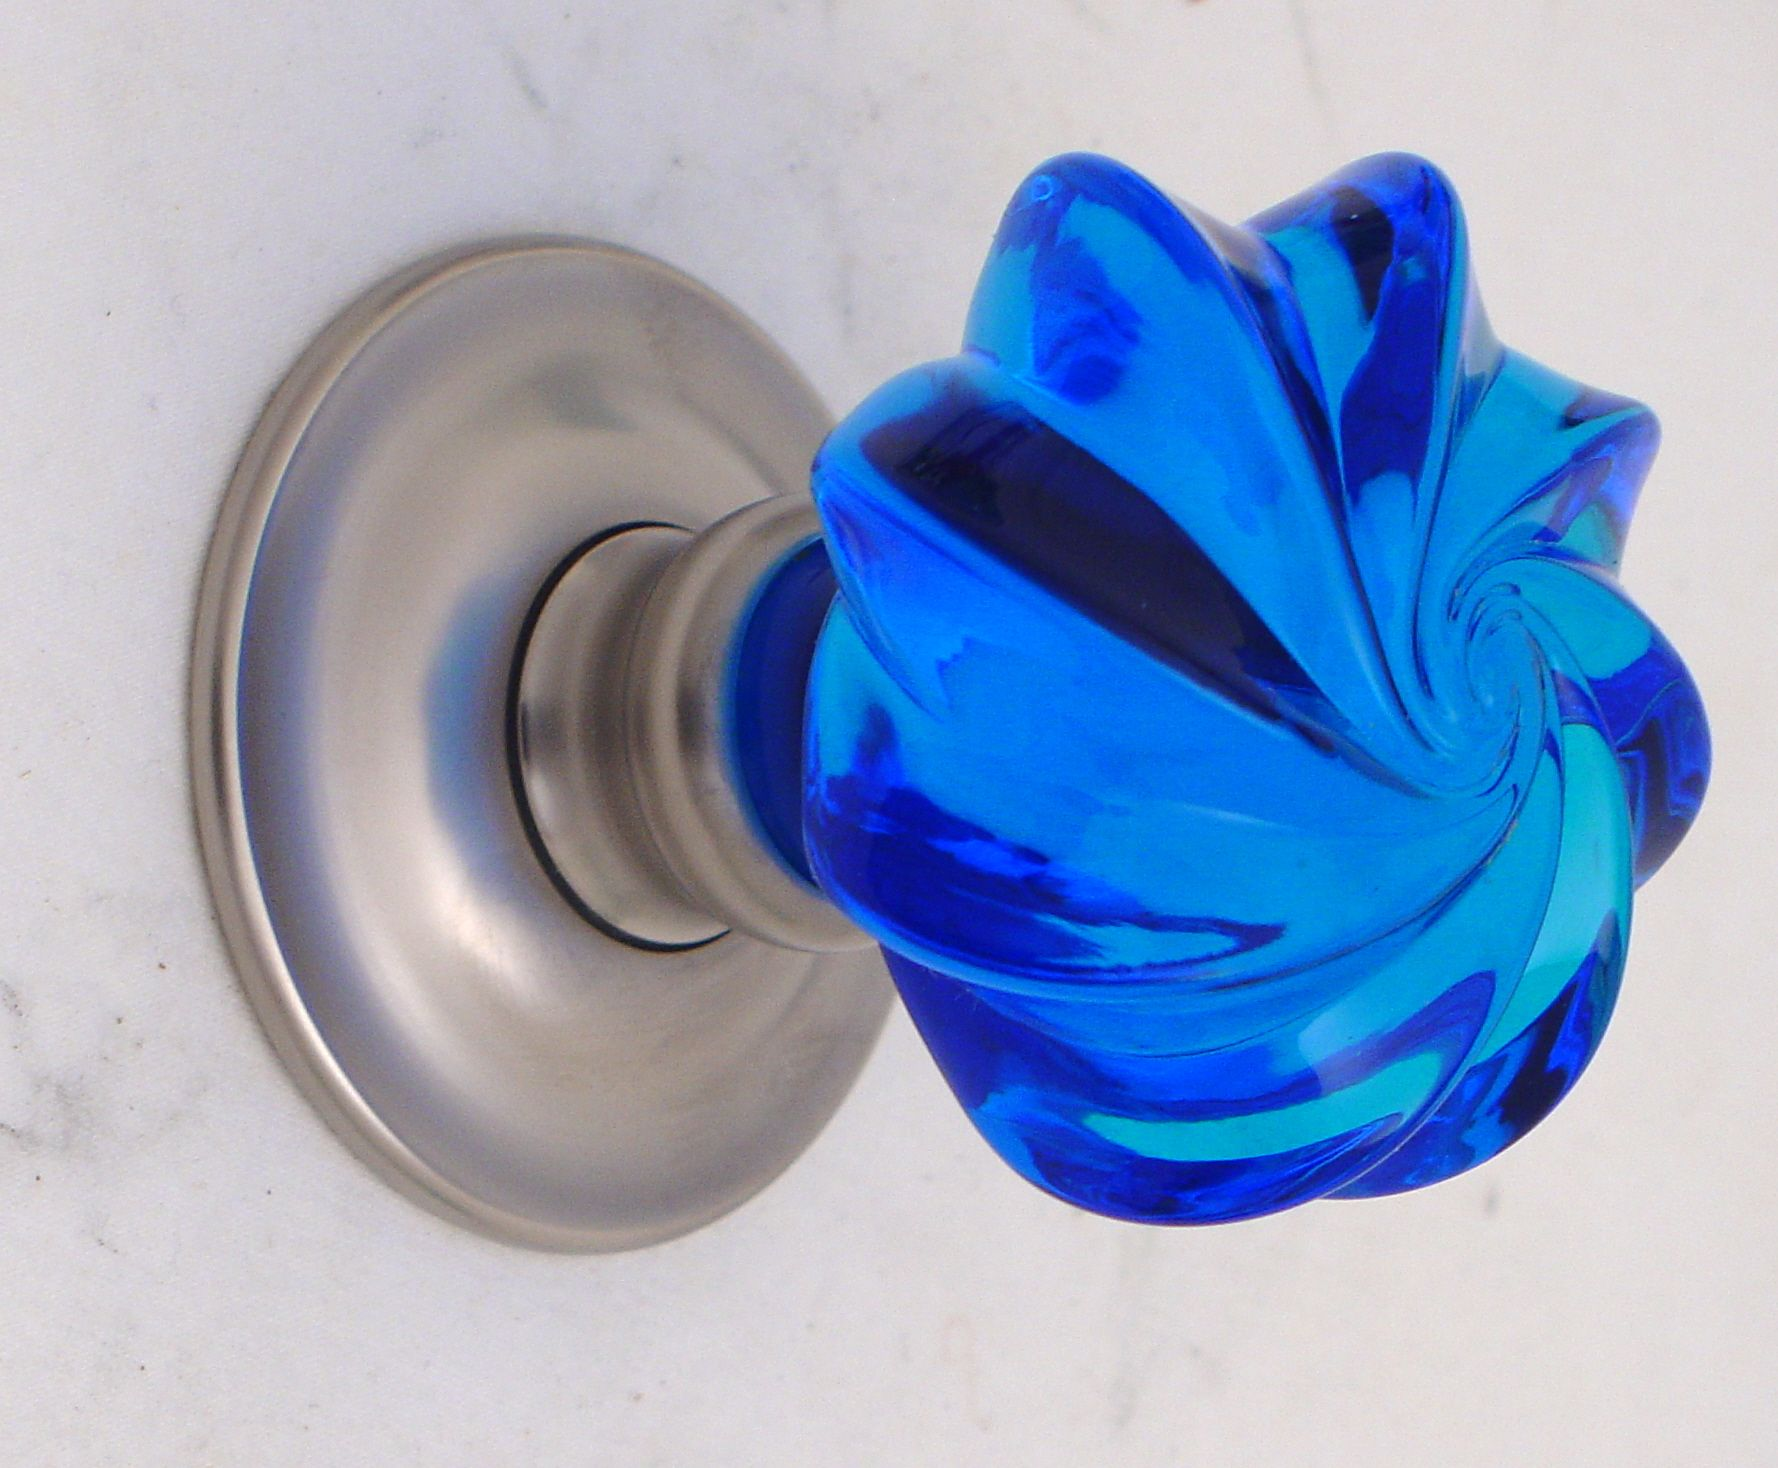 Bright Blue Glass Whirl Door Knob On A Satin Nickel Rose By Merlin